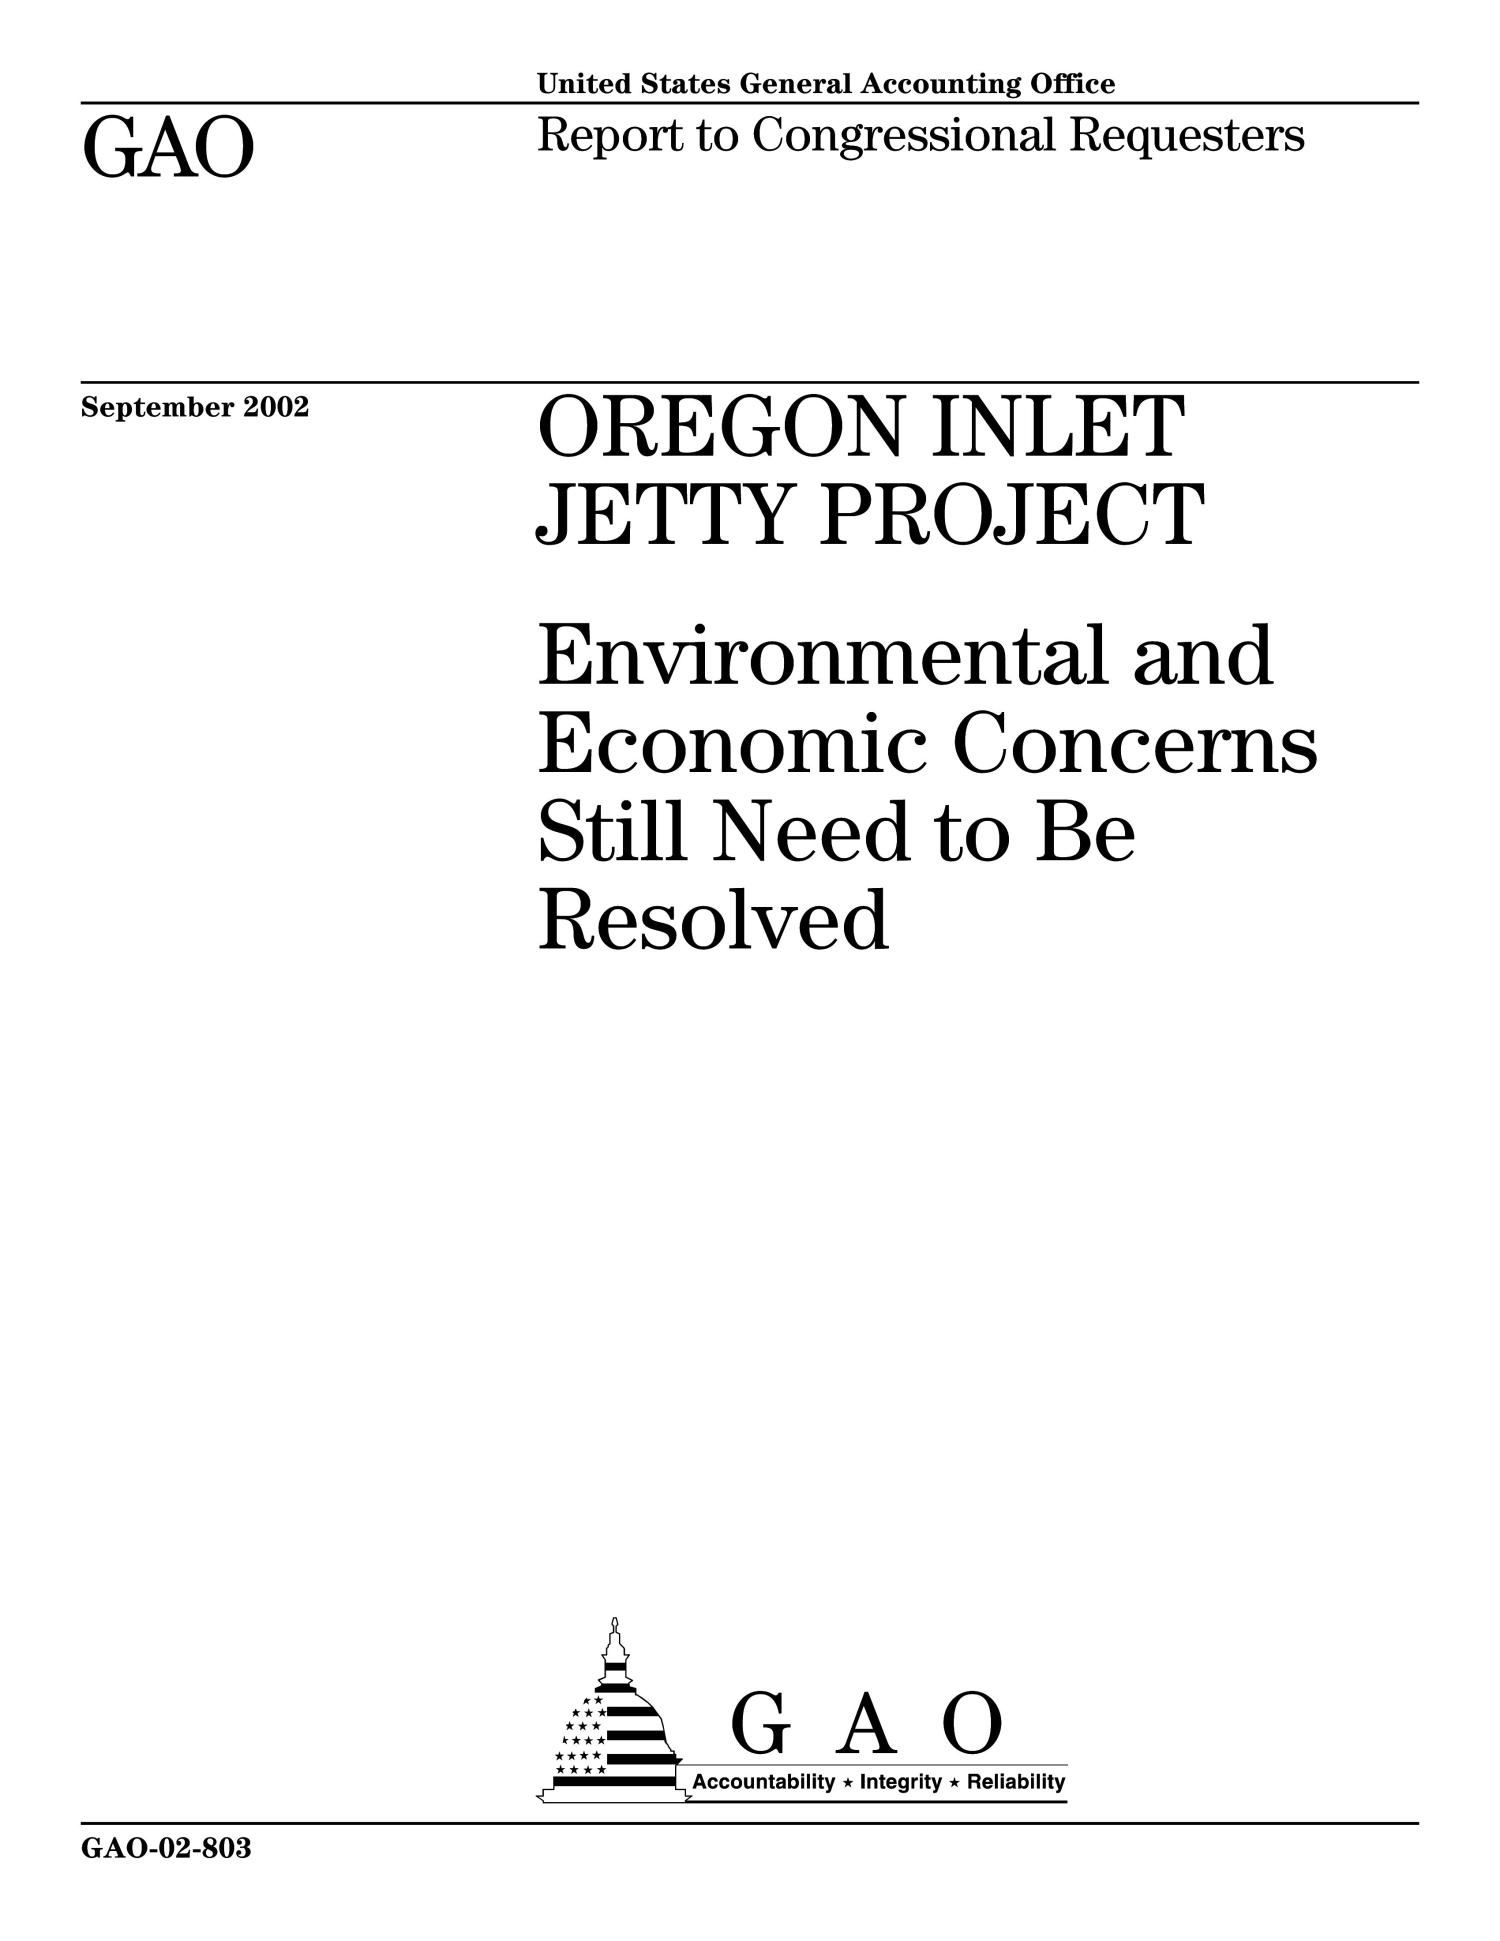 Oregon Inlet Jetty Project: Environmental and Economic Concerns Need to Be Resolved                                                                                                      [Sequence #]: 1 of 95